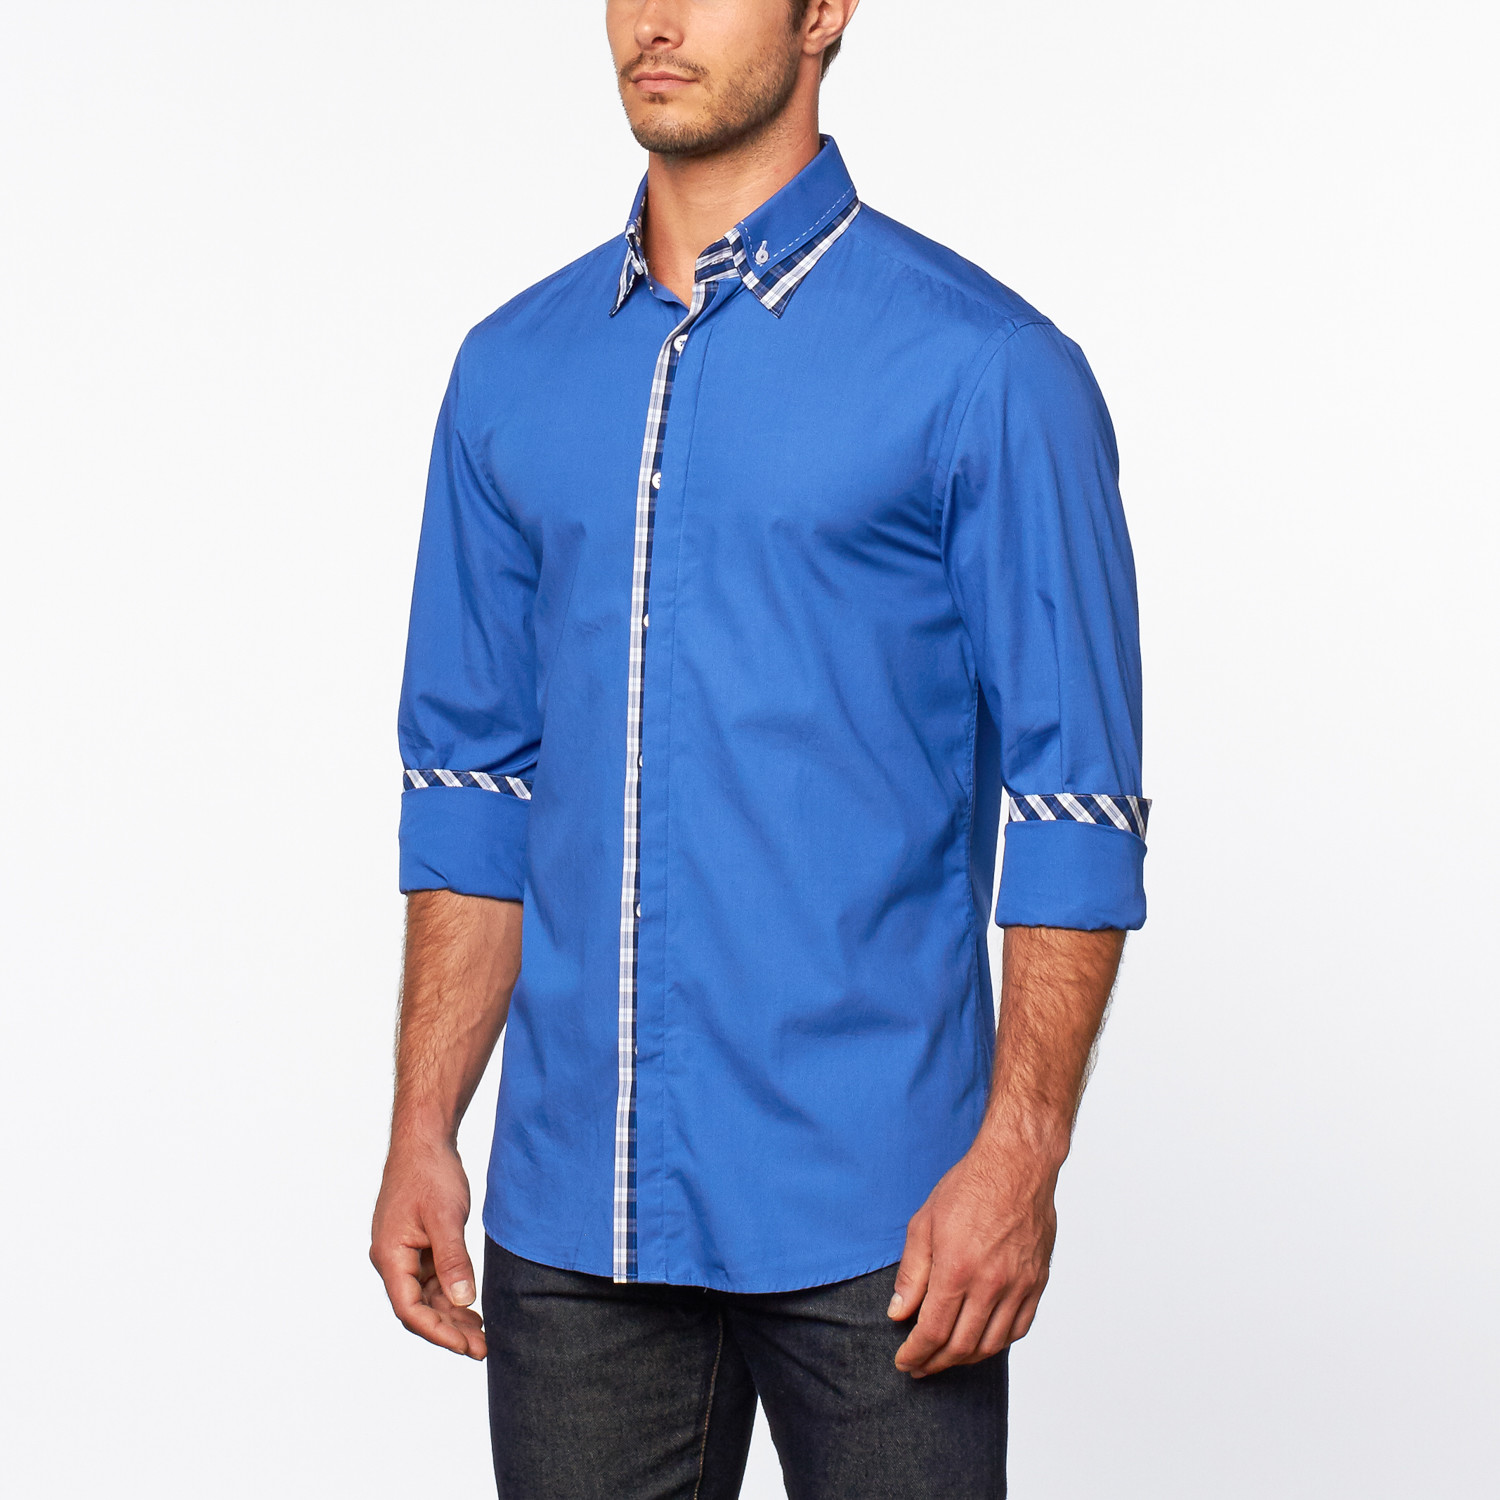 Button up shirt plaid detail royal blue s dolce for Royals button up shirt